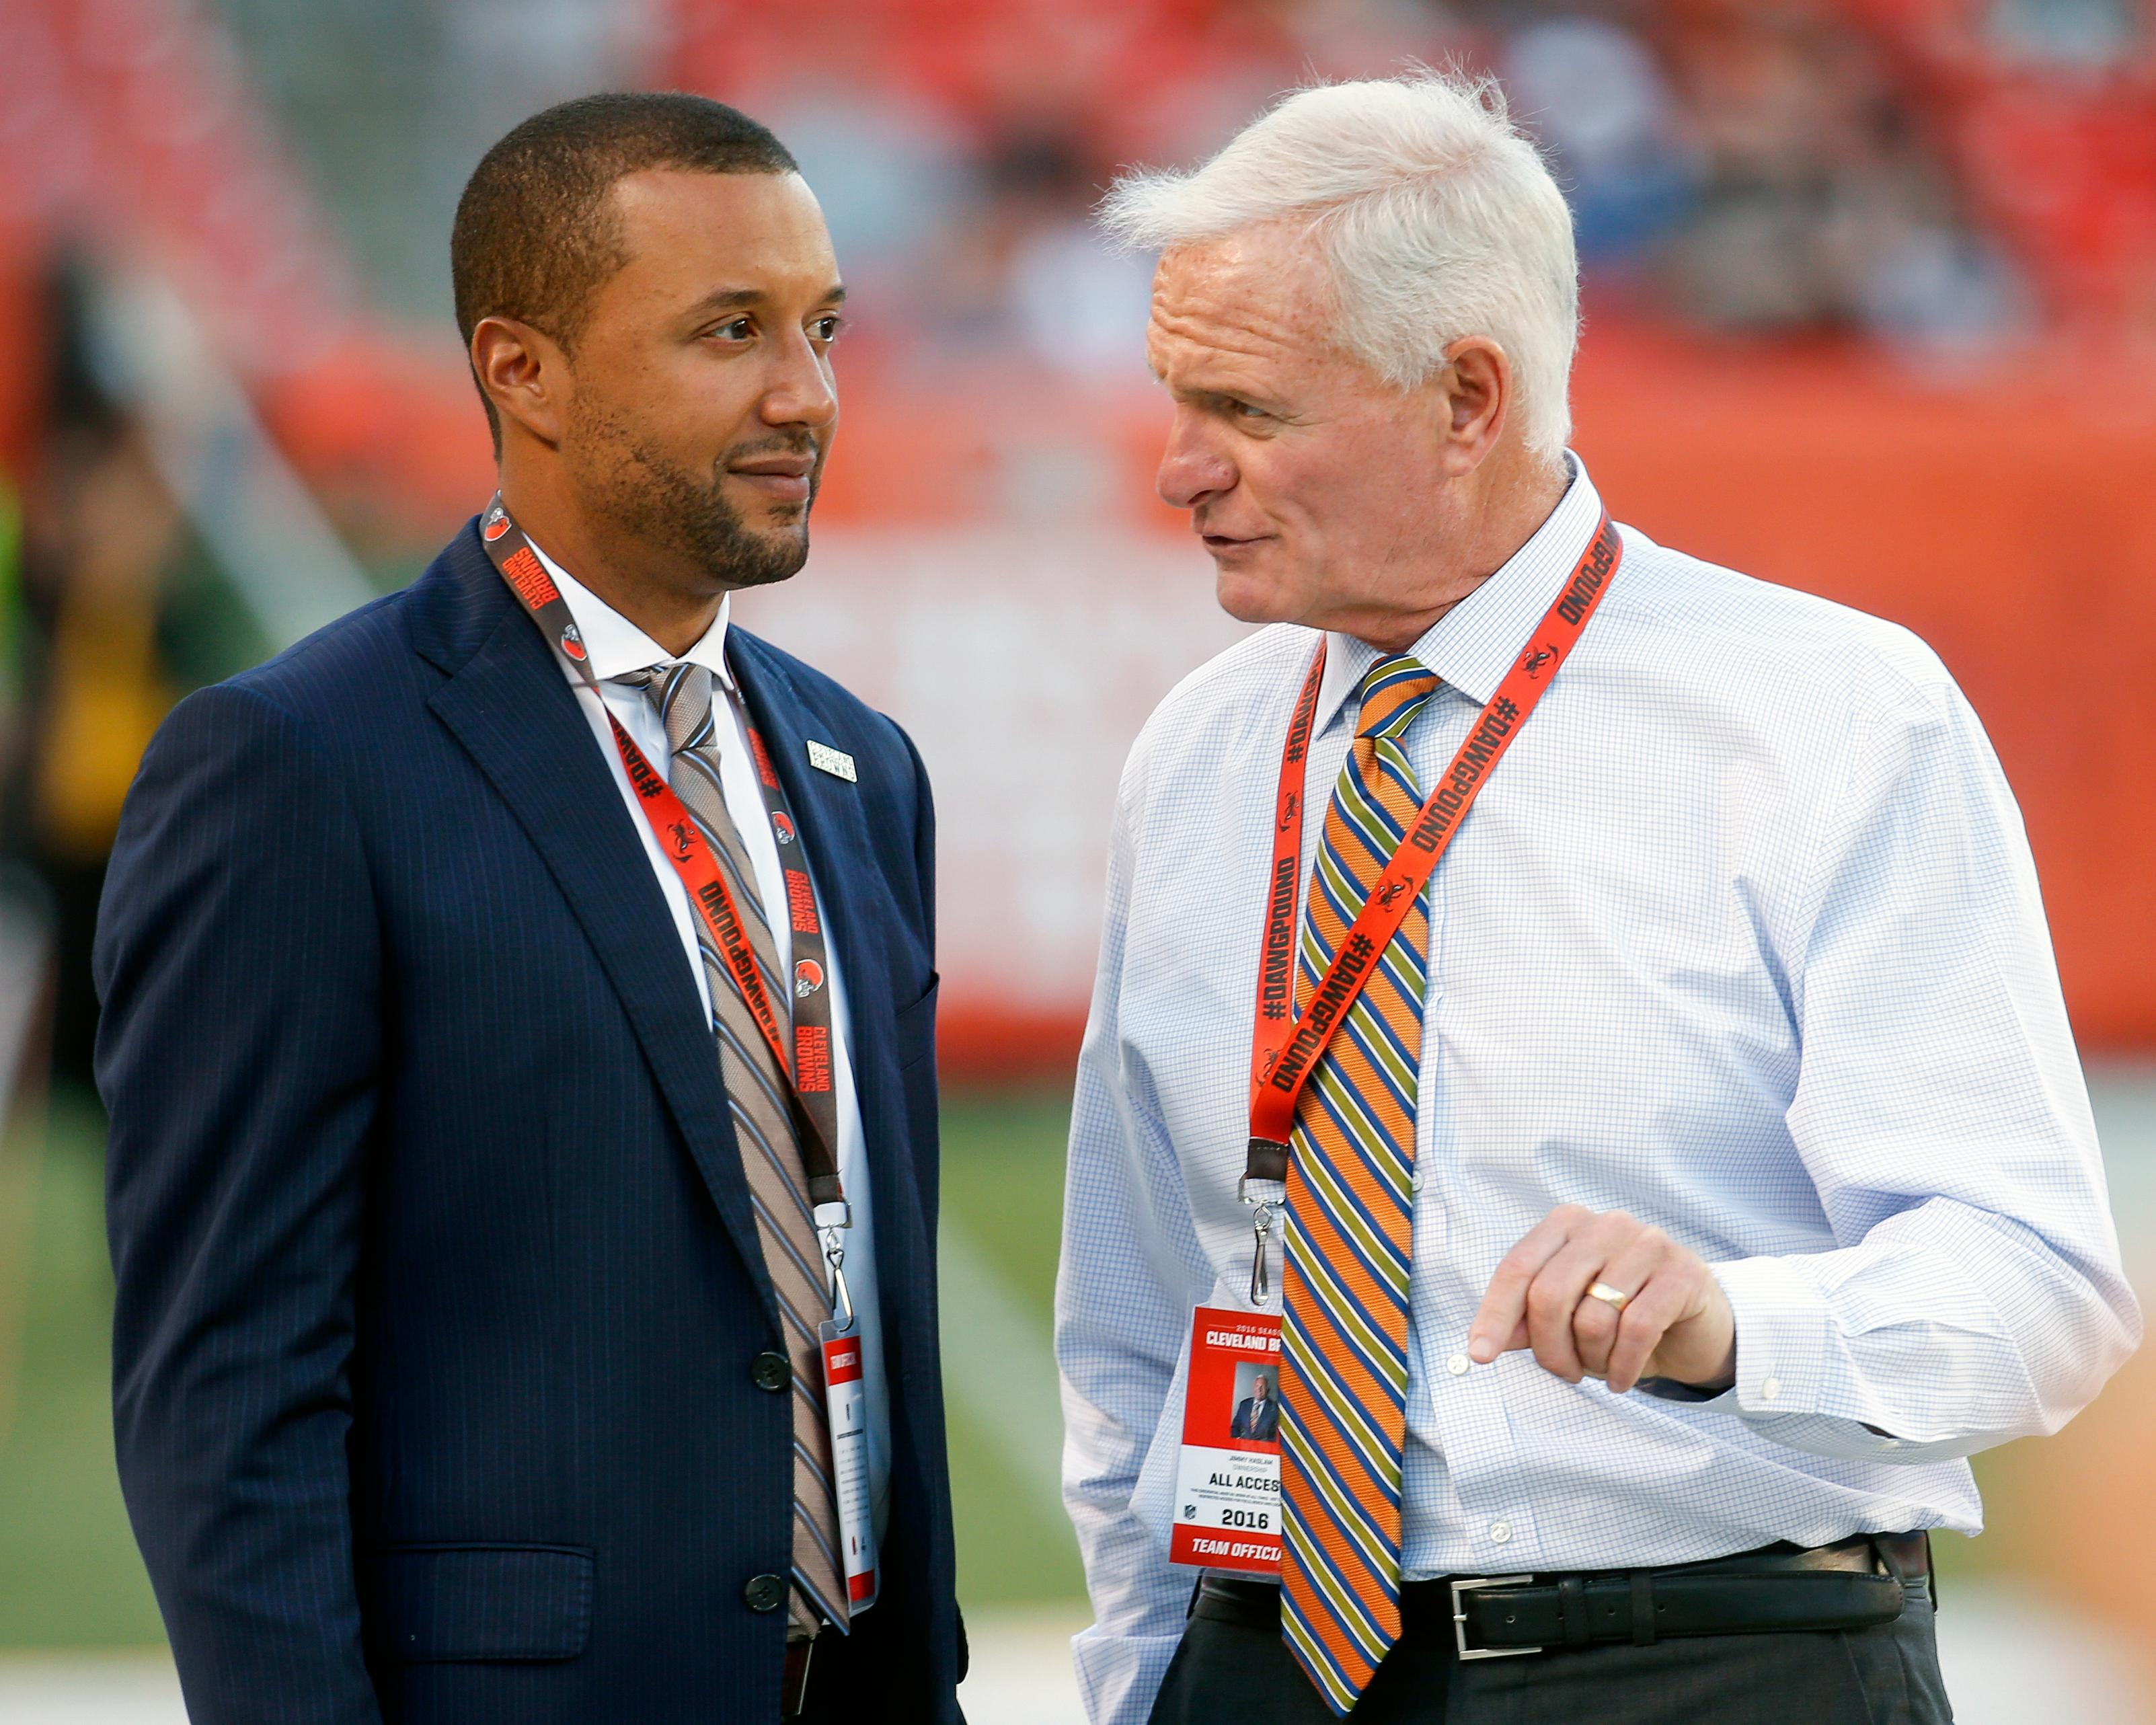 FILE - In this Aug. 18, 2016, file photo, Sashi Brown, acting executive vice president of football operations for the Cleveland Browns, left, speaks with Browns' owner Jimmy Haslam during practice before an NFL preseason football game against the Atlanta Falcons, in Cleveland. A person familiar with the decisions says the Cleveland Browns have fired Sashi Brown, the club's vice president of football operations. Brown, who was named the team's top executive by owners Dee and Jimmy Haslam during an overhaul following the 2015 season, was relieved of his duties on Thursday, Dec. 7, 2017, said the person who spoke to the Associated Press on condition of anonymity because the team has not announced the move. (AP Photo/Ron Schwane)